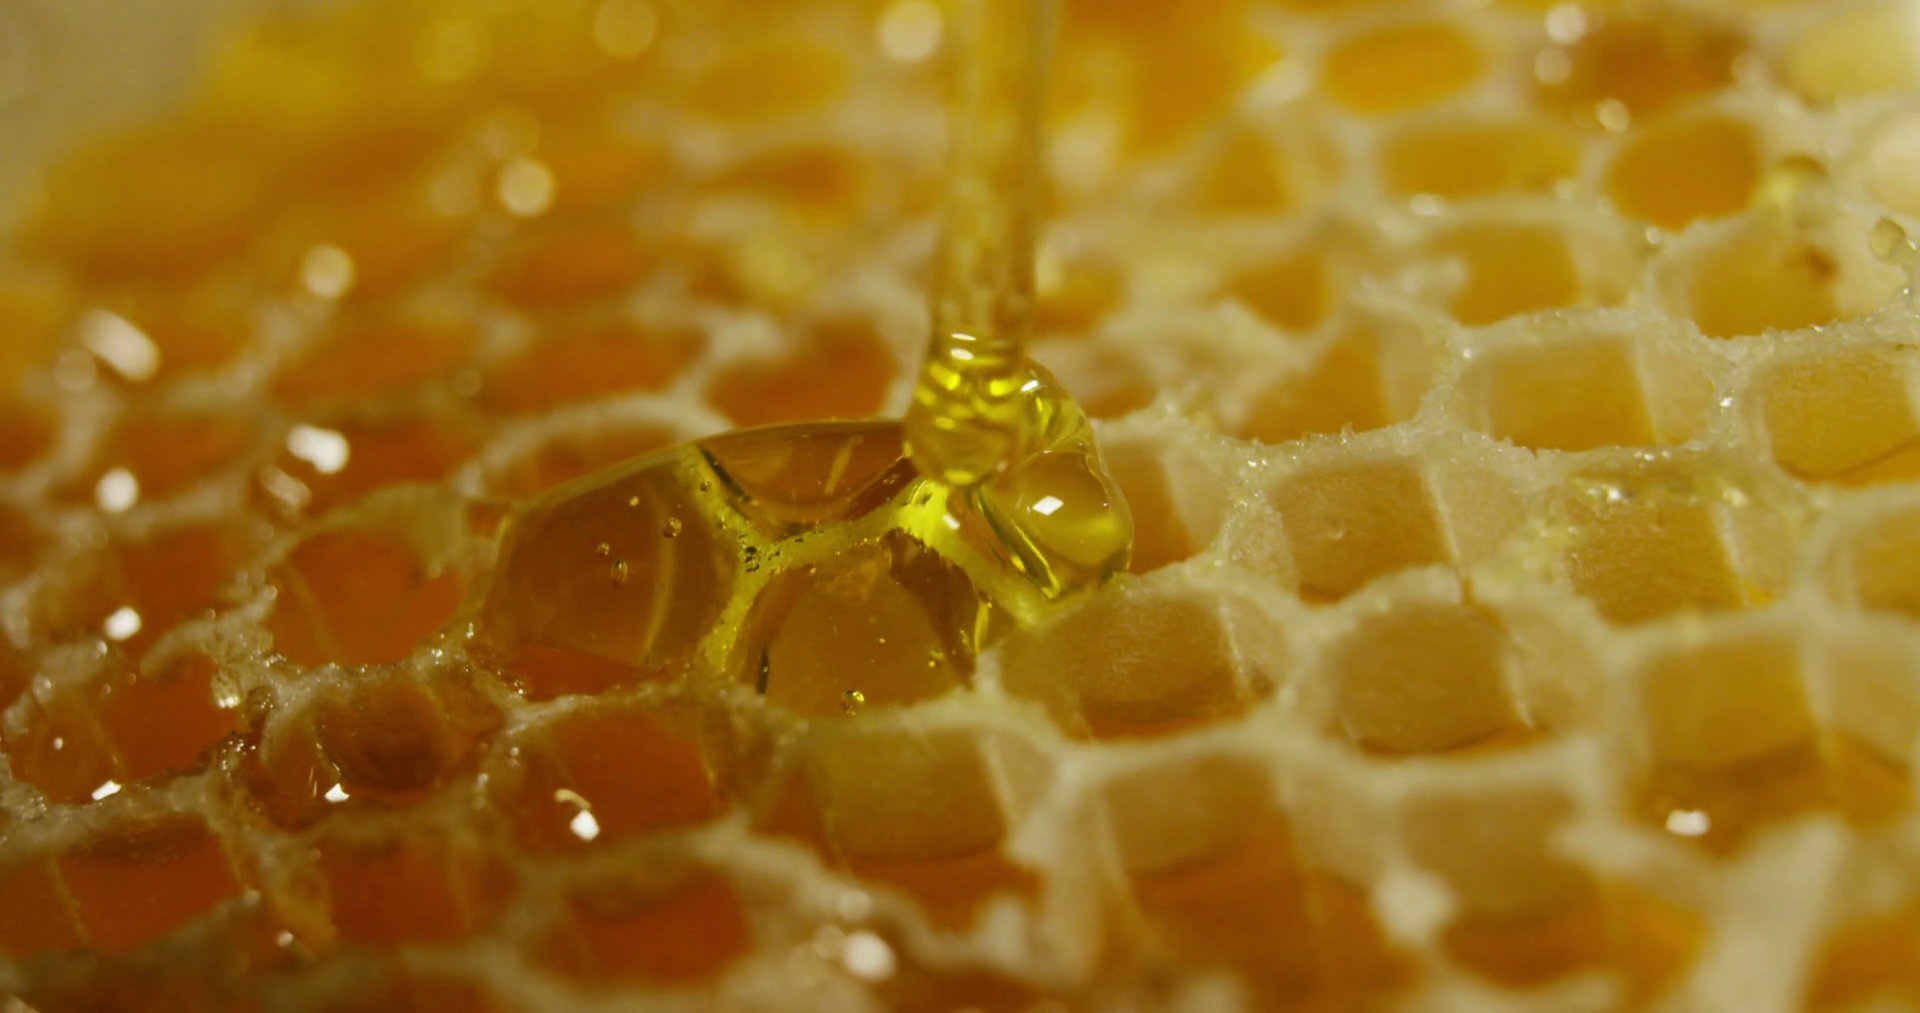 slow-motion-of-biological-and-genuine-honey-drips-inside-a-jar-honeycomb-dripping-honey-black-background-and-a-wooden-table-macro-close-up_rvexq2dnfx_thumbnail-full03.png